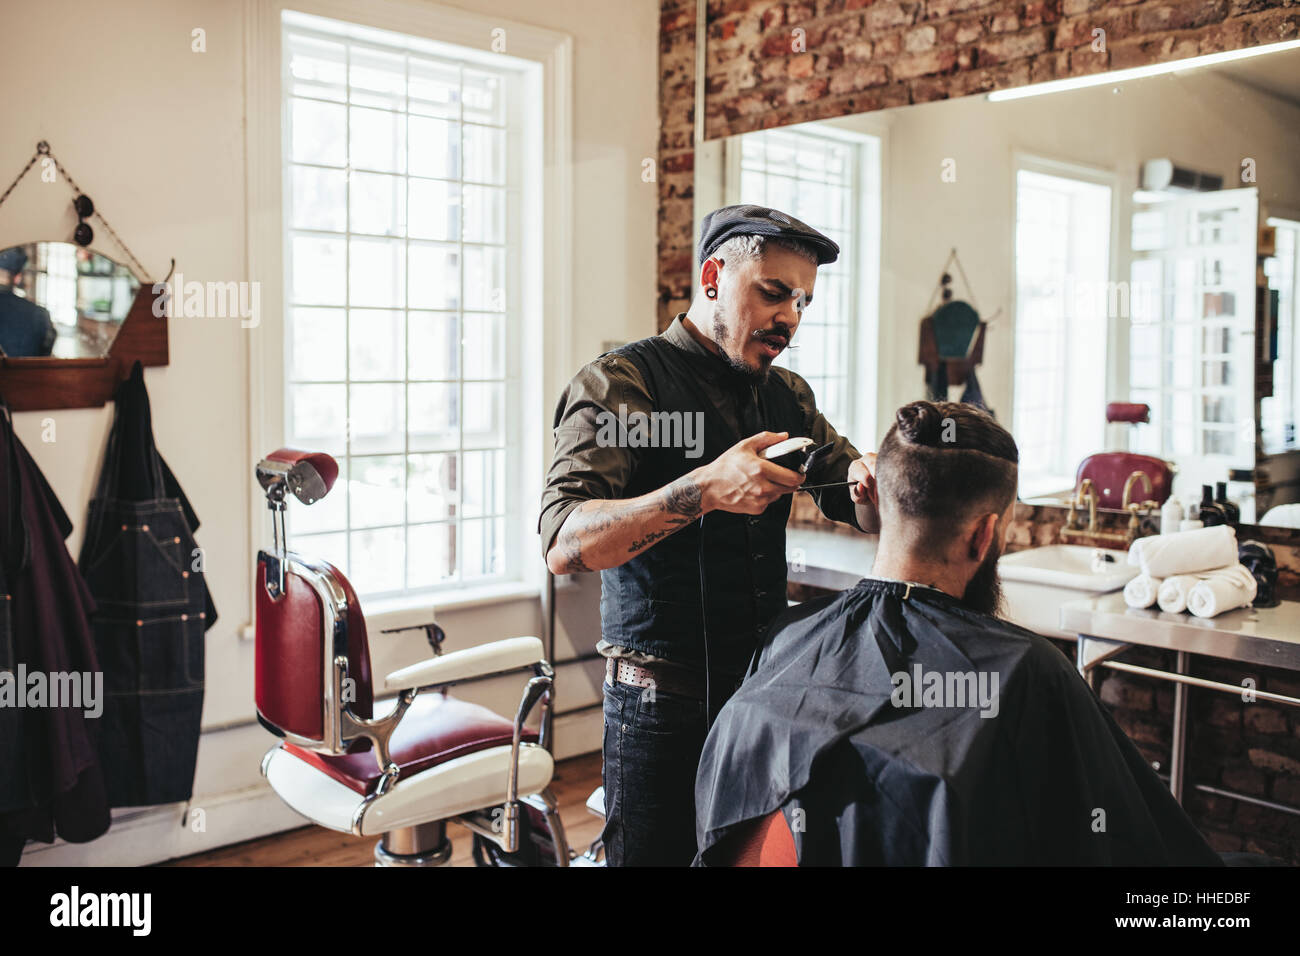 Hairstylist serving client in salon. Young man getting trendy haircut at barbershop. - Stock Image